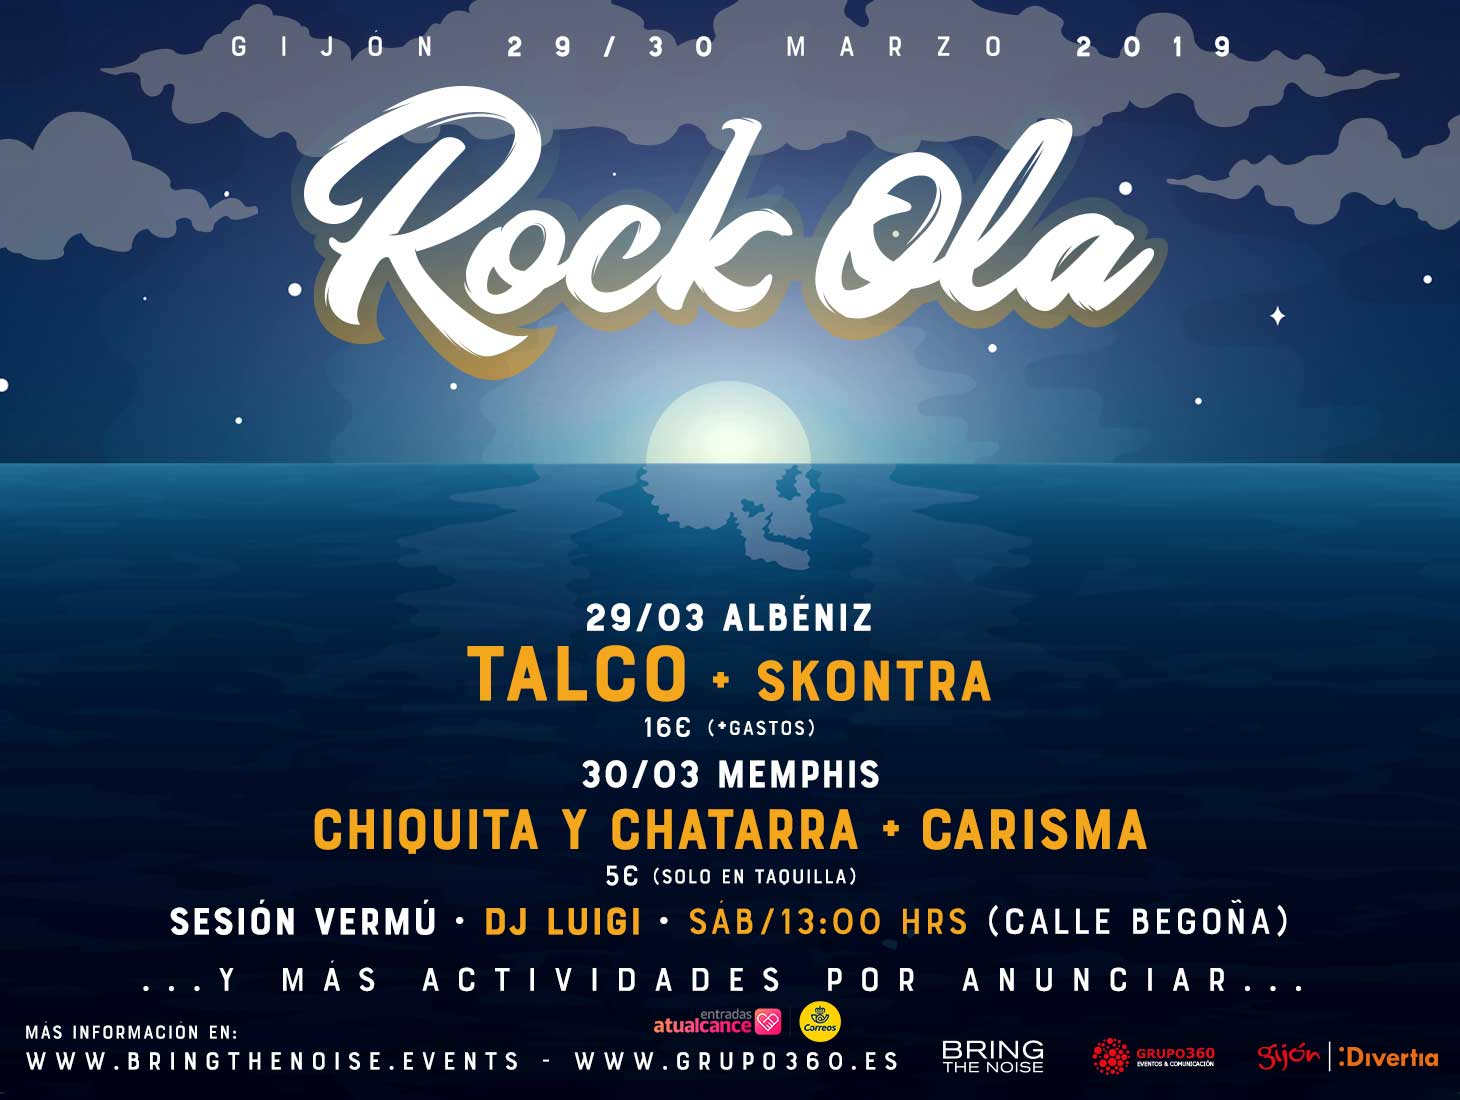 rock-ola-2019-5c49e44b9e046.jpeg